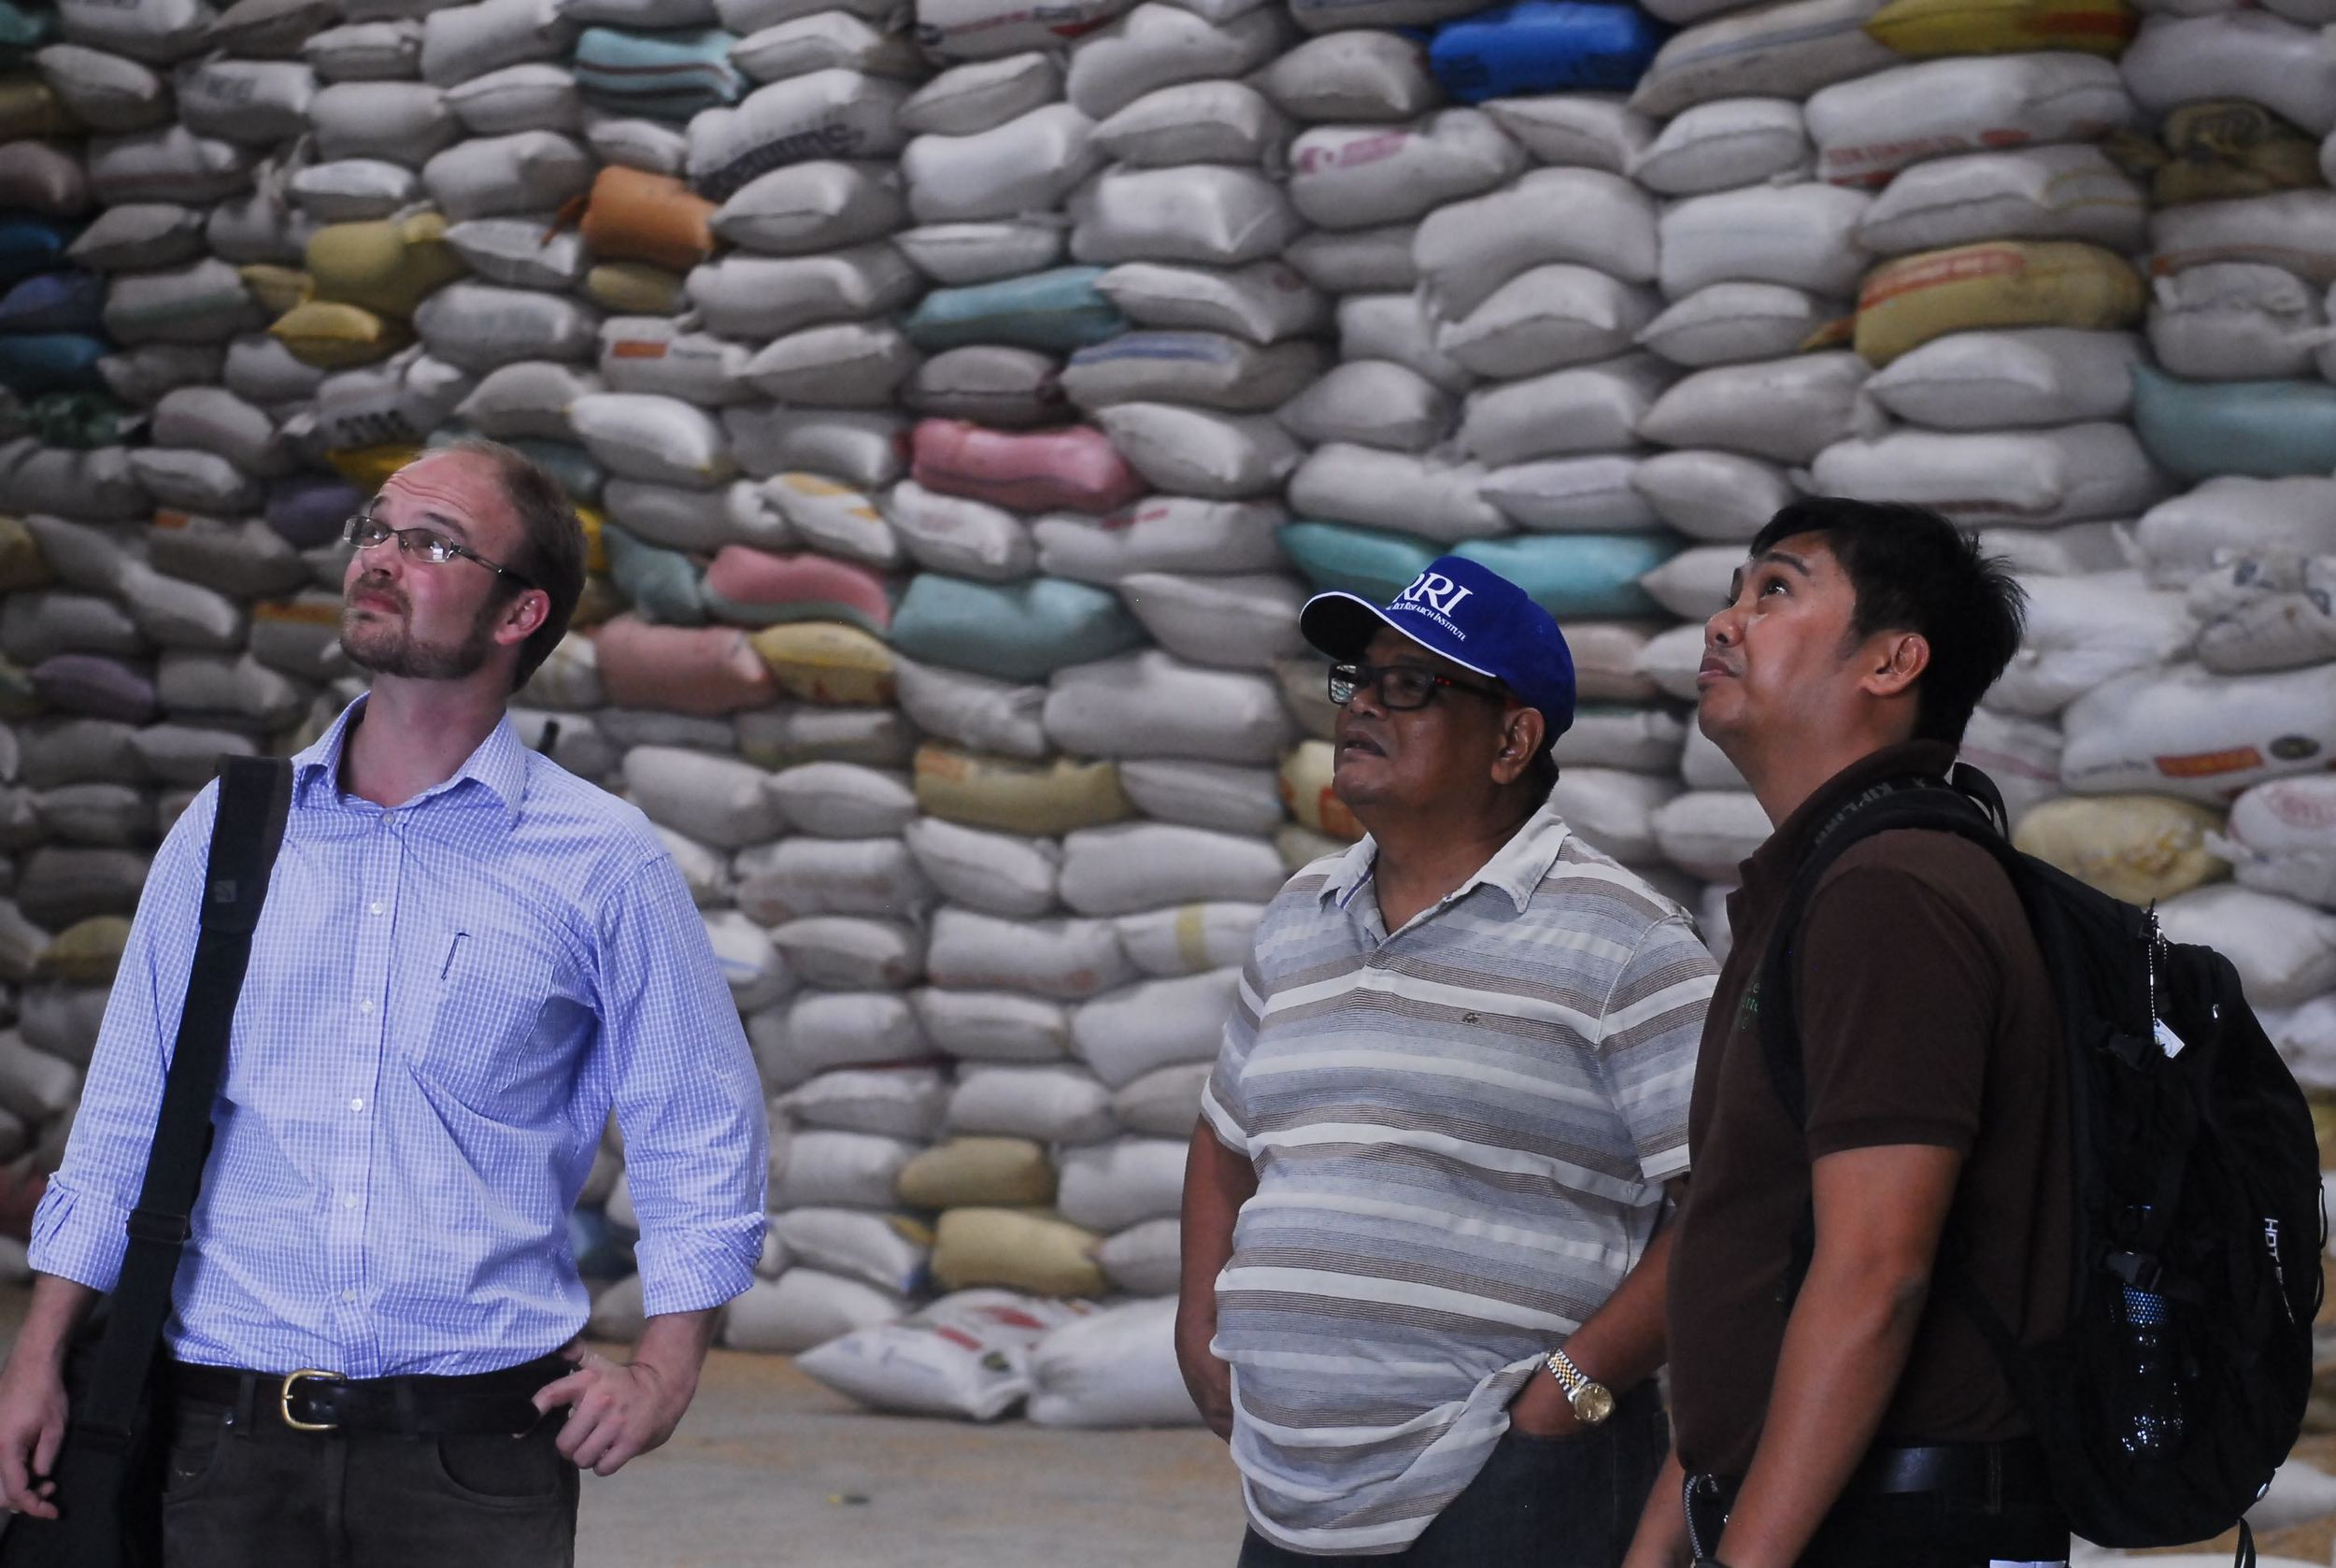 Working with IRRI and rice millers in the Philippines on increasing value chain efficiency.